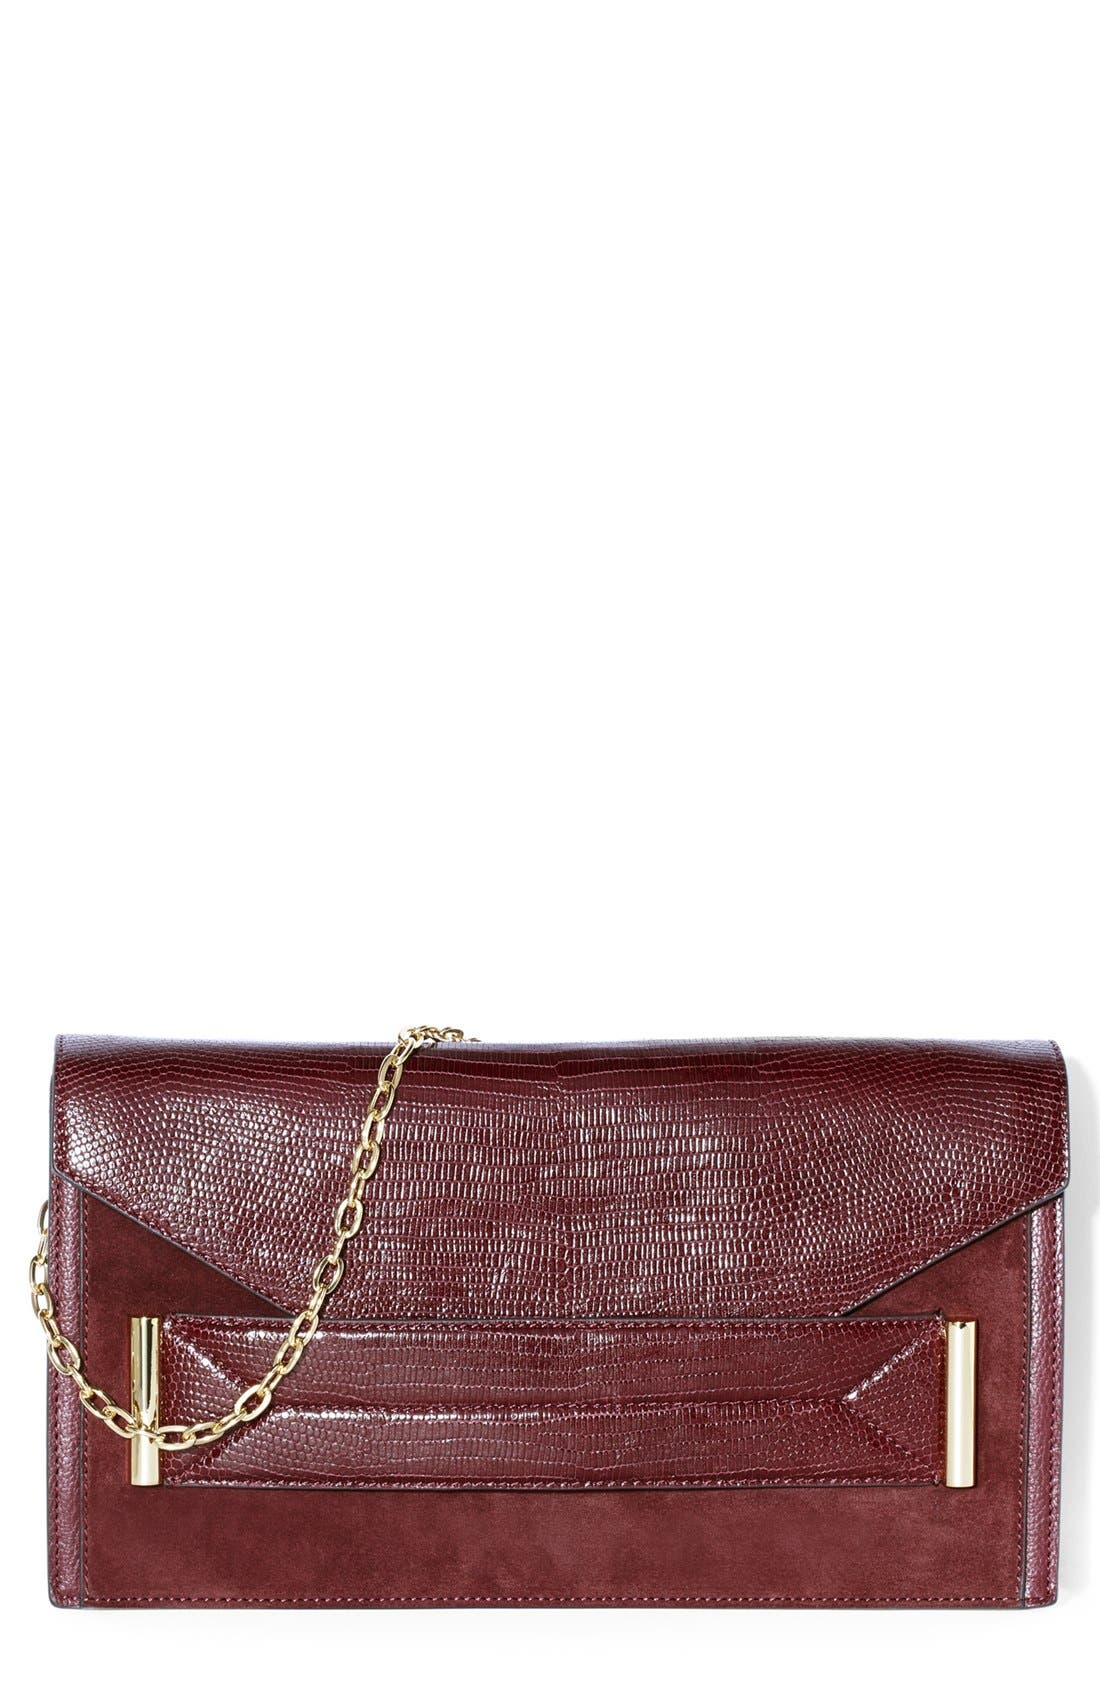 Main Image - Vince Camuto 'Billy' Leather Clutch